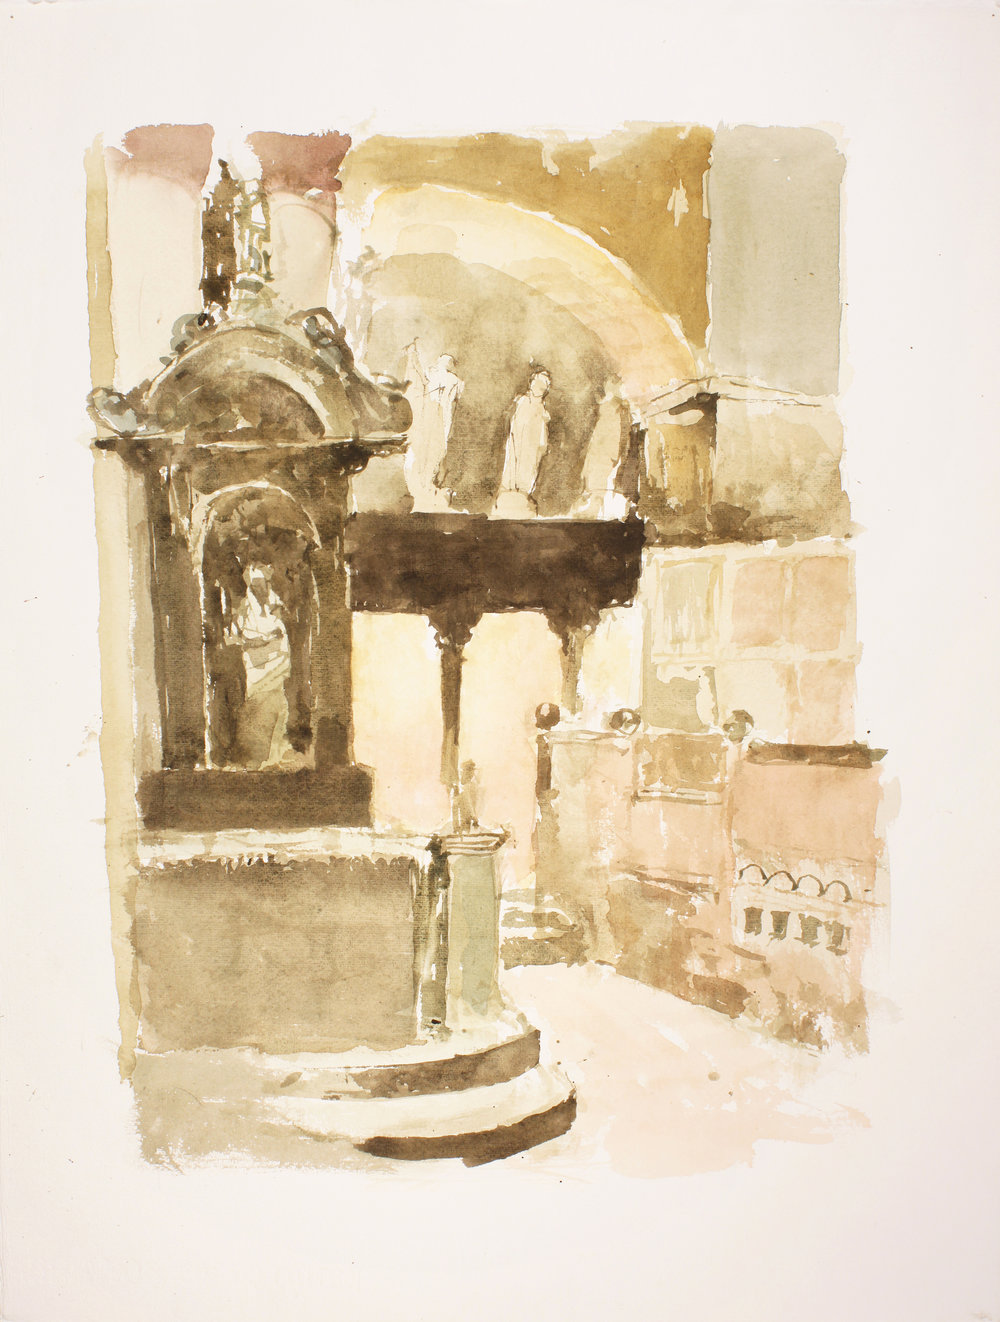 1998_San_Marco_Interior_Venice_watercolou_on_paper_23x17in_WPF383.jpg